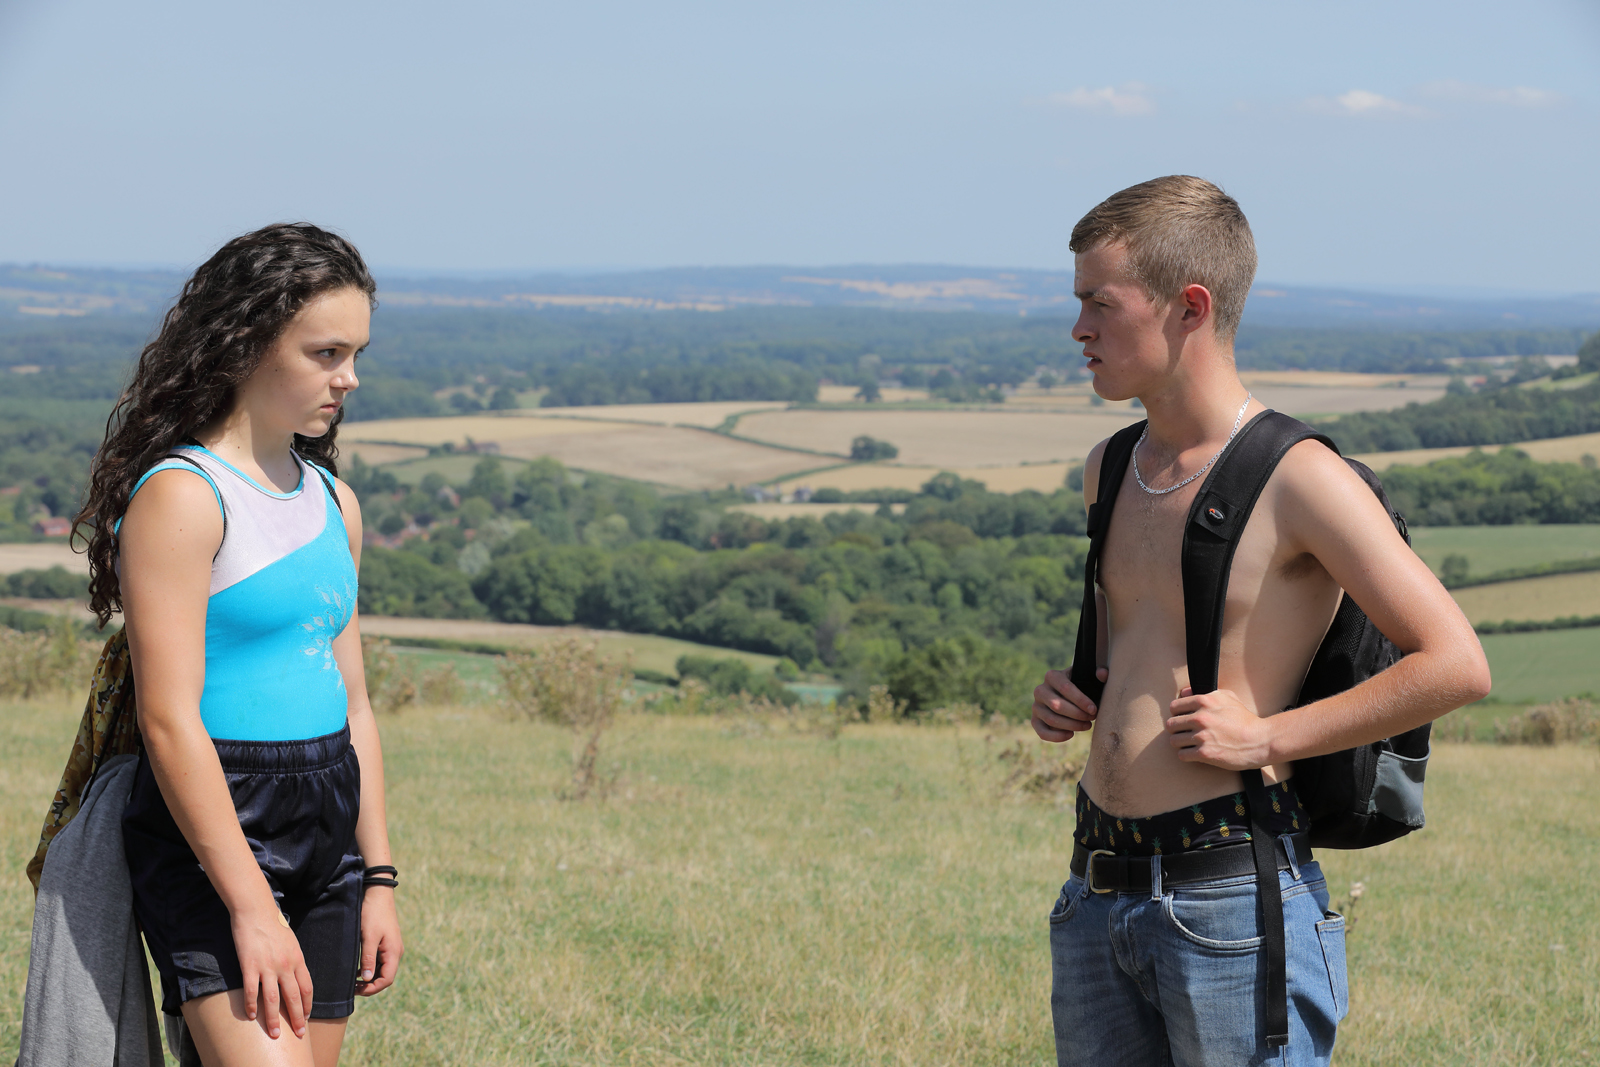 Frankie Box and Alfie Duggan in PERFECT 10, released in UK by 606 Distribution on August 7 2020